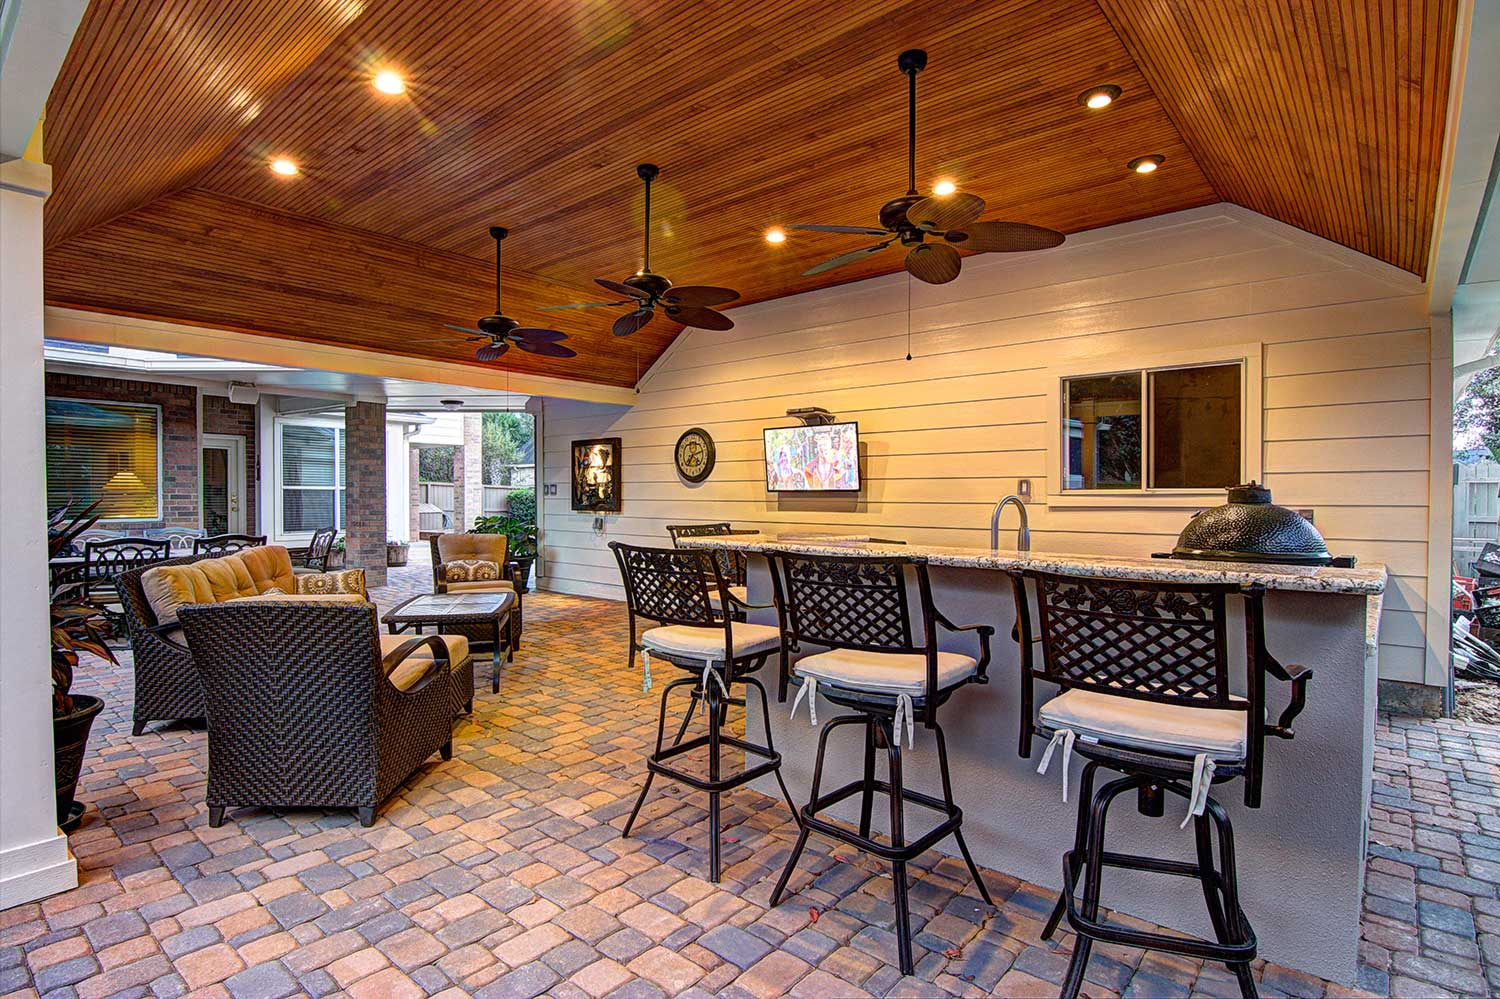 Outdoor Patio Design Pictures Tongue And Grove Patio Cover Plus Outdoor Kitchen Hhi